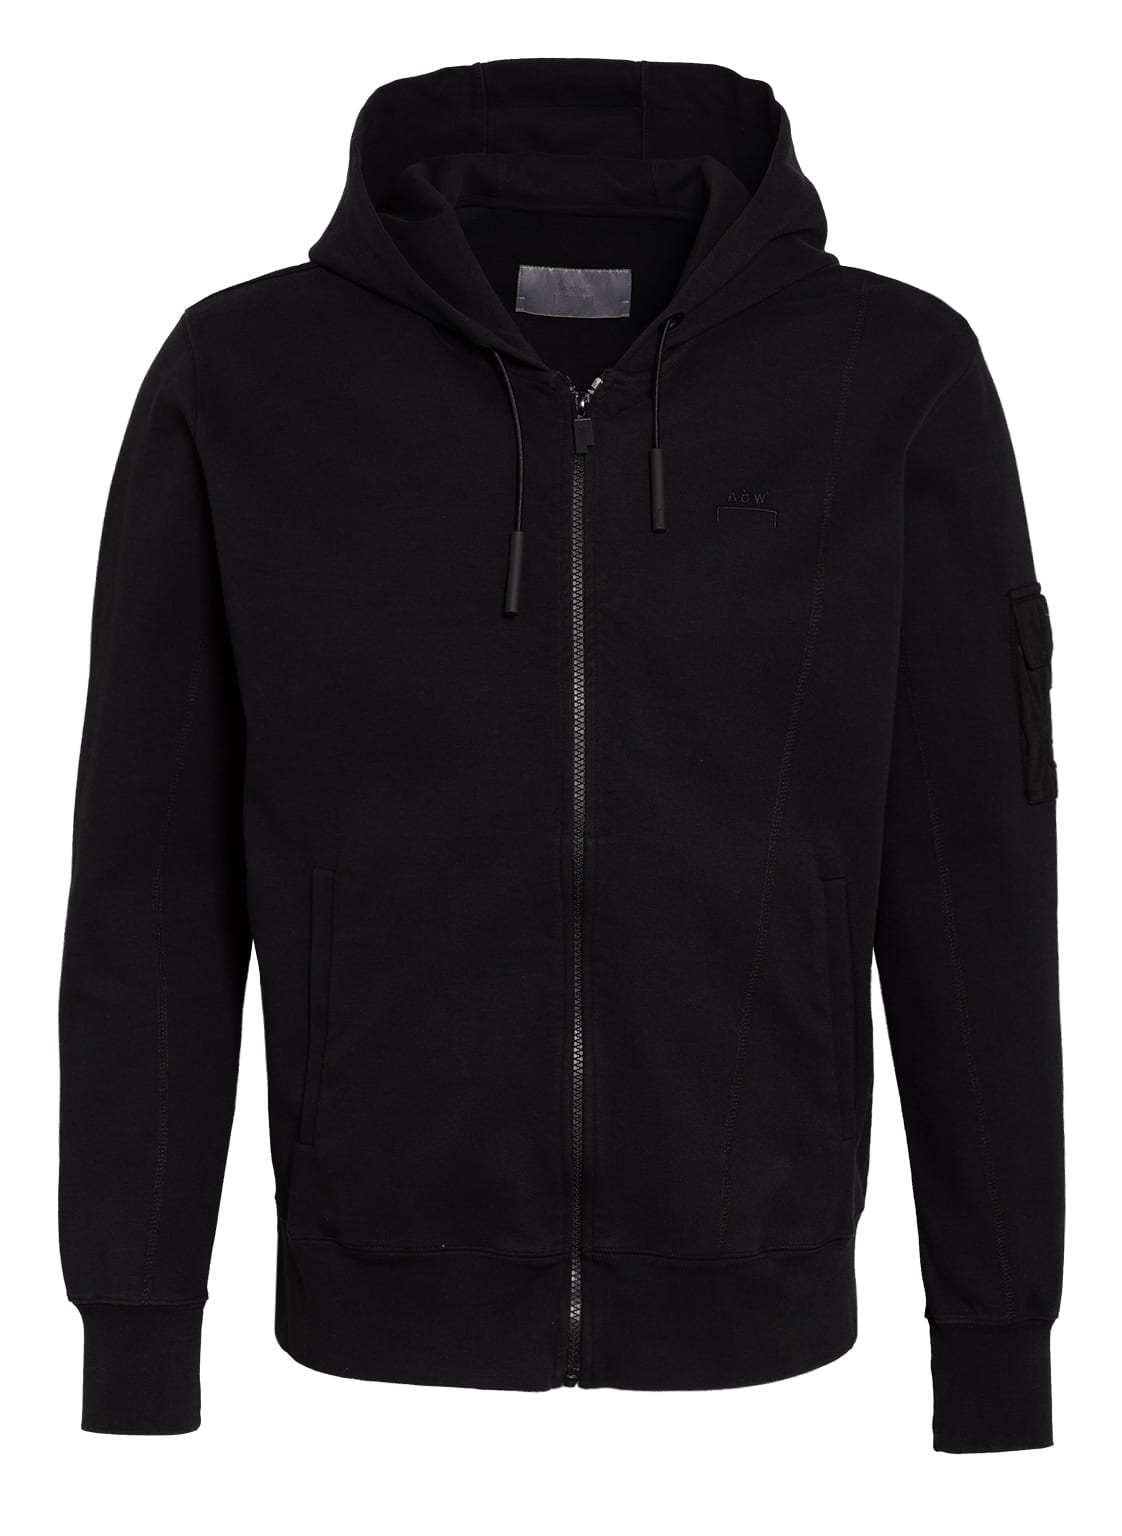 Image of A-Cold-Wall* Sweatjacke schwarz